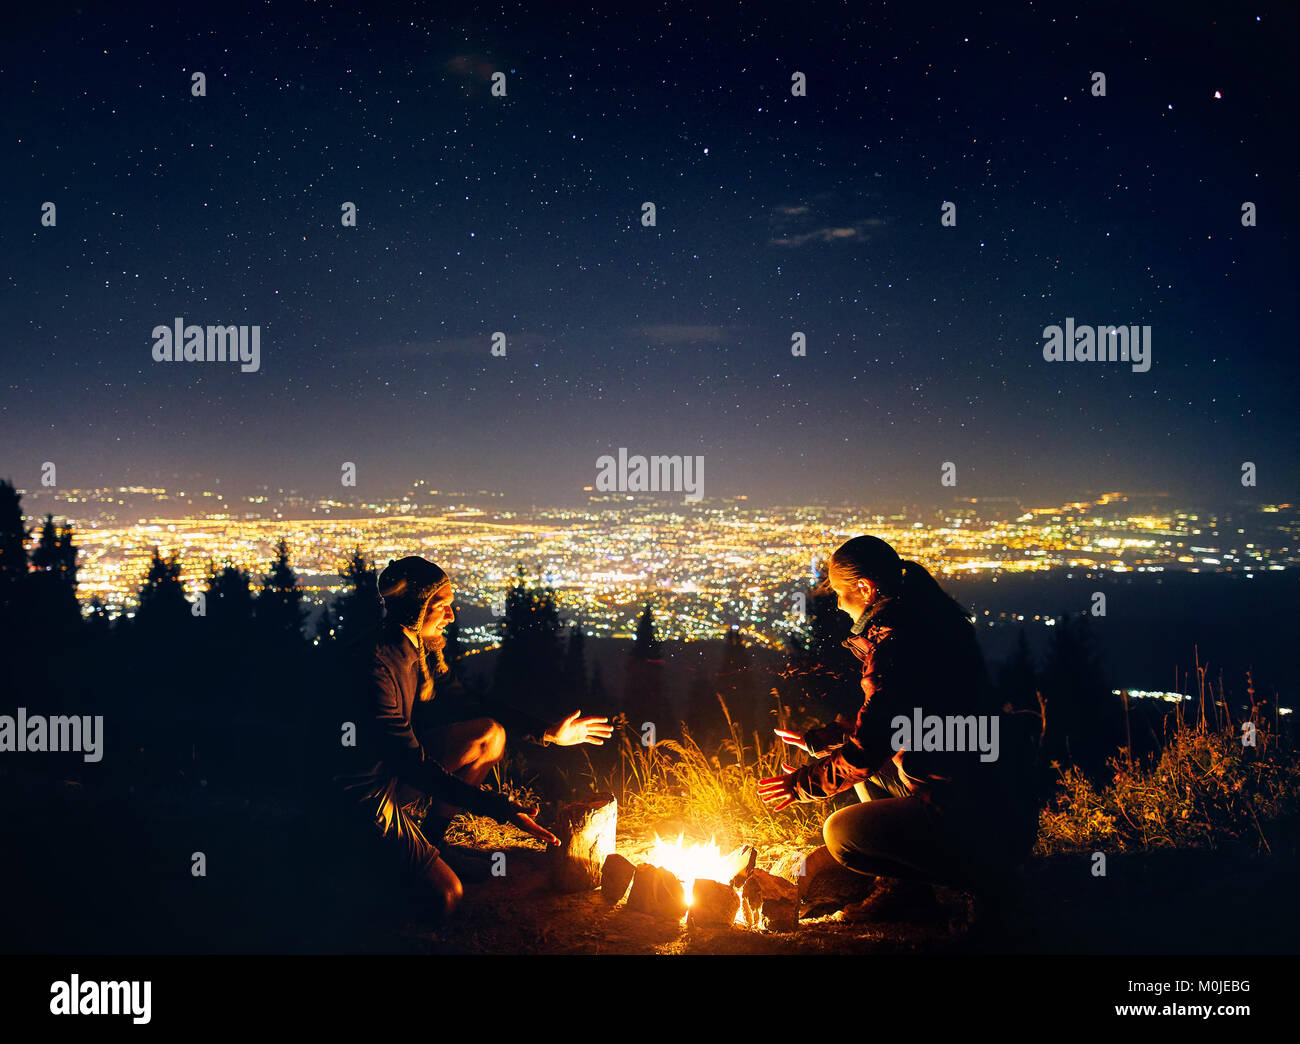 Happy couple hikers warm they hands near campfire under night sky with stars and city lights at background - Stock Image